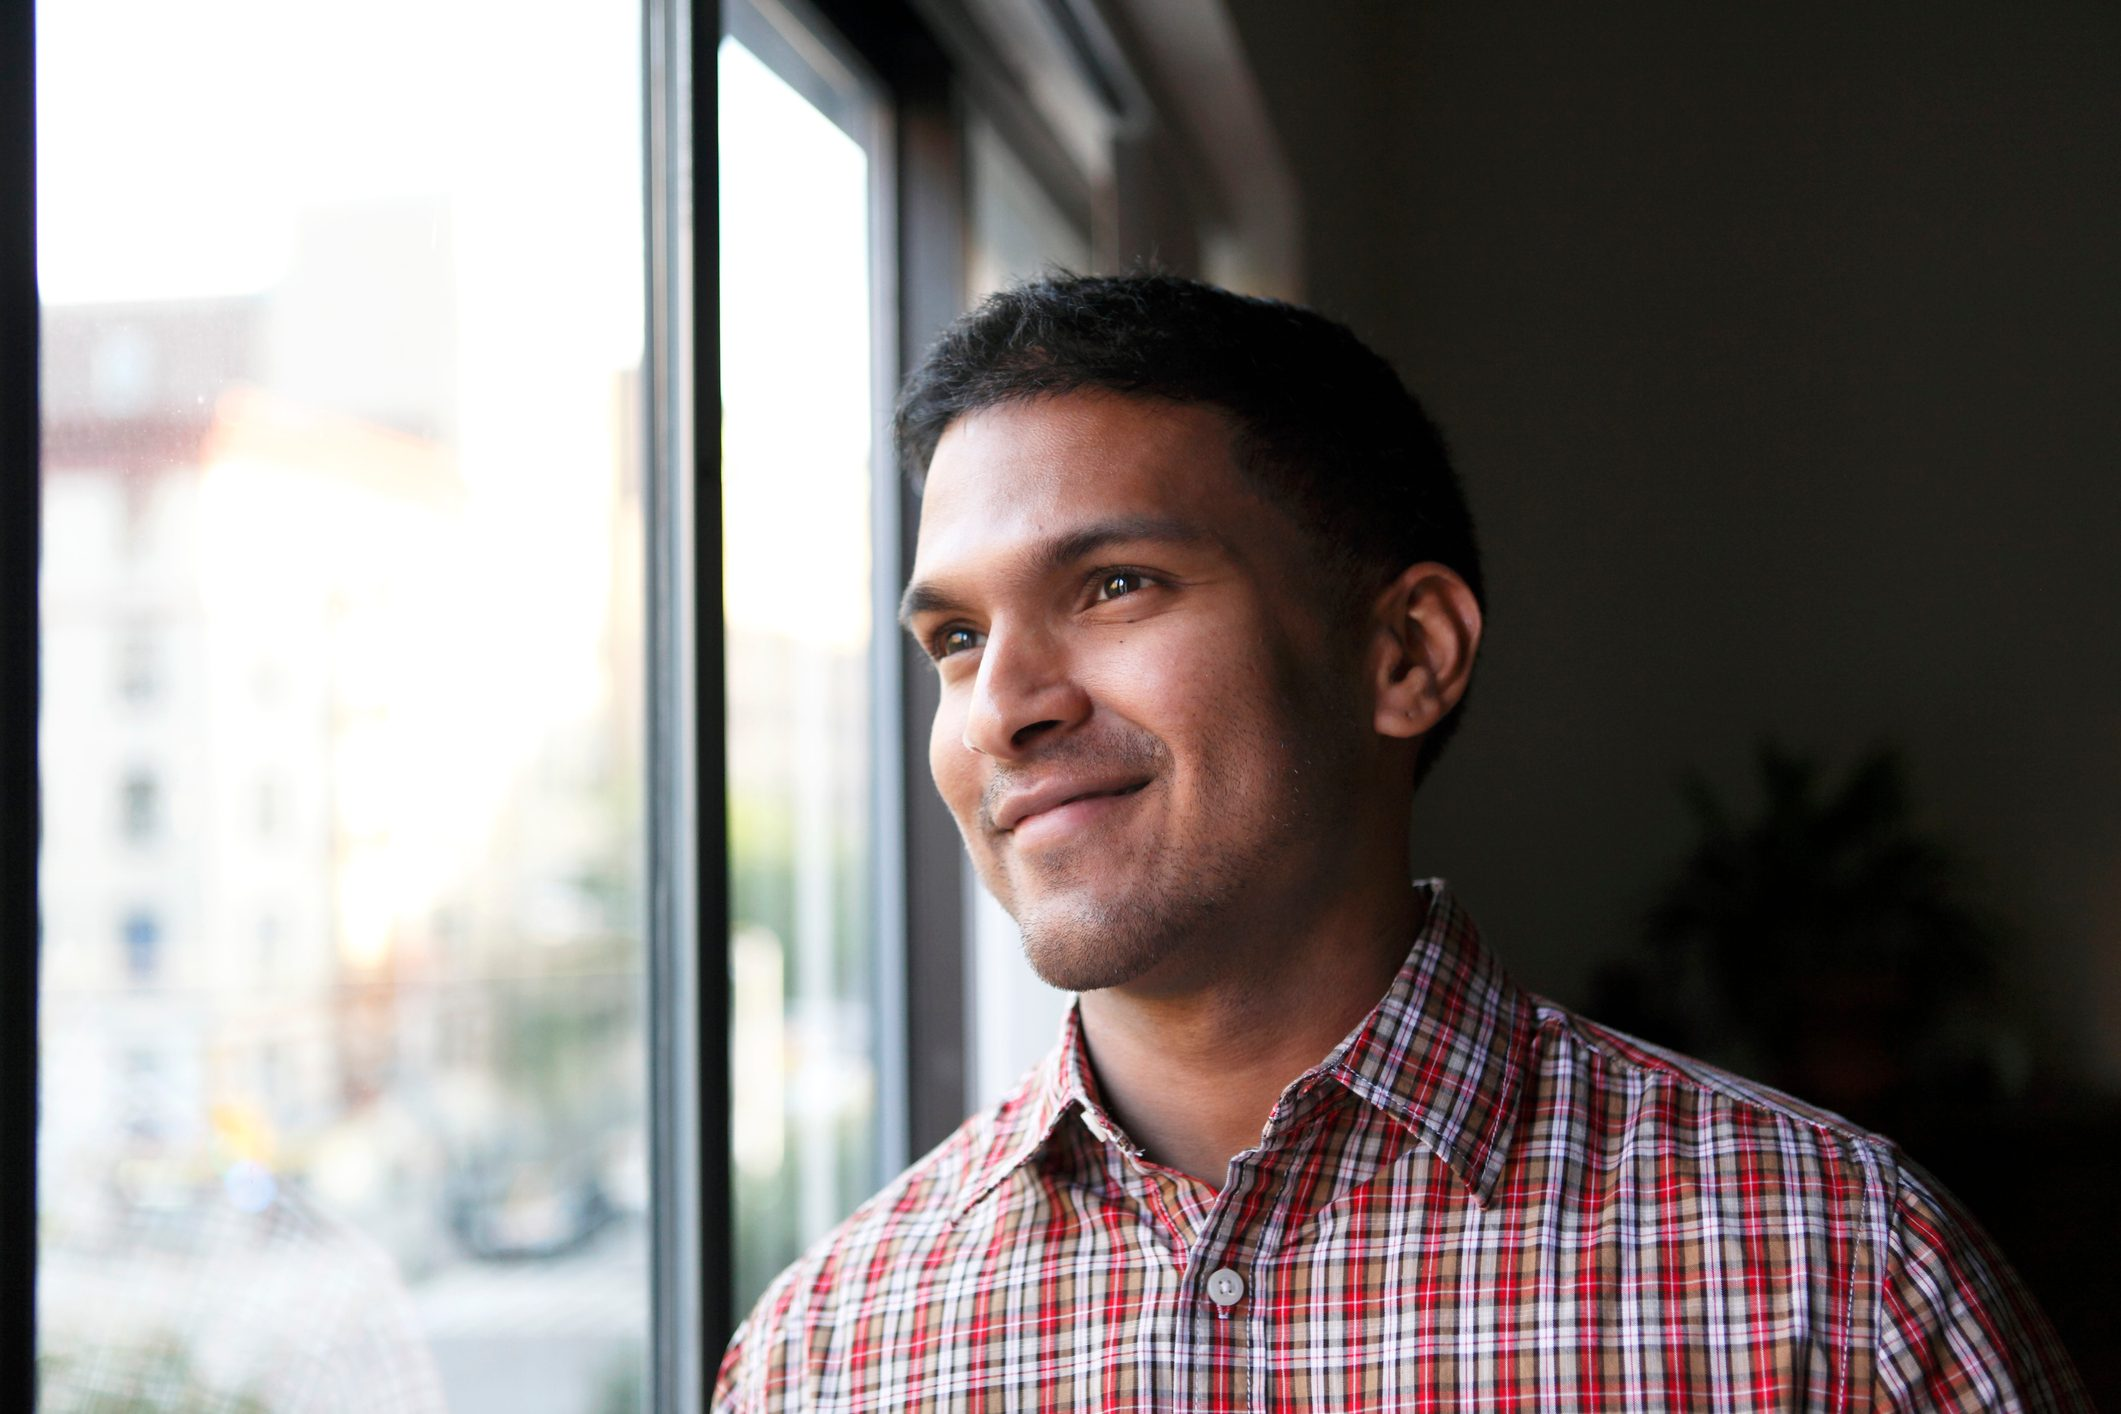 man smiling looking out window